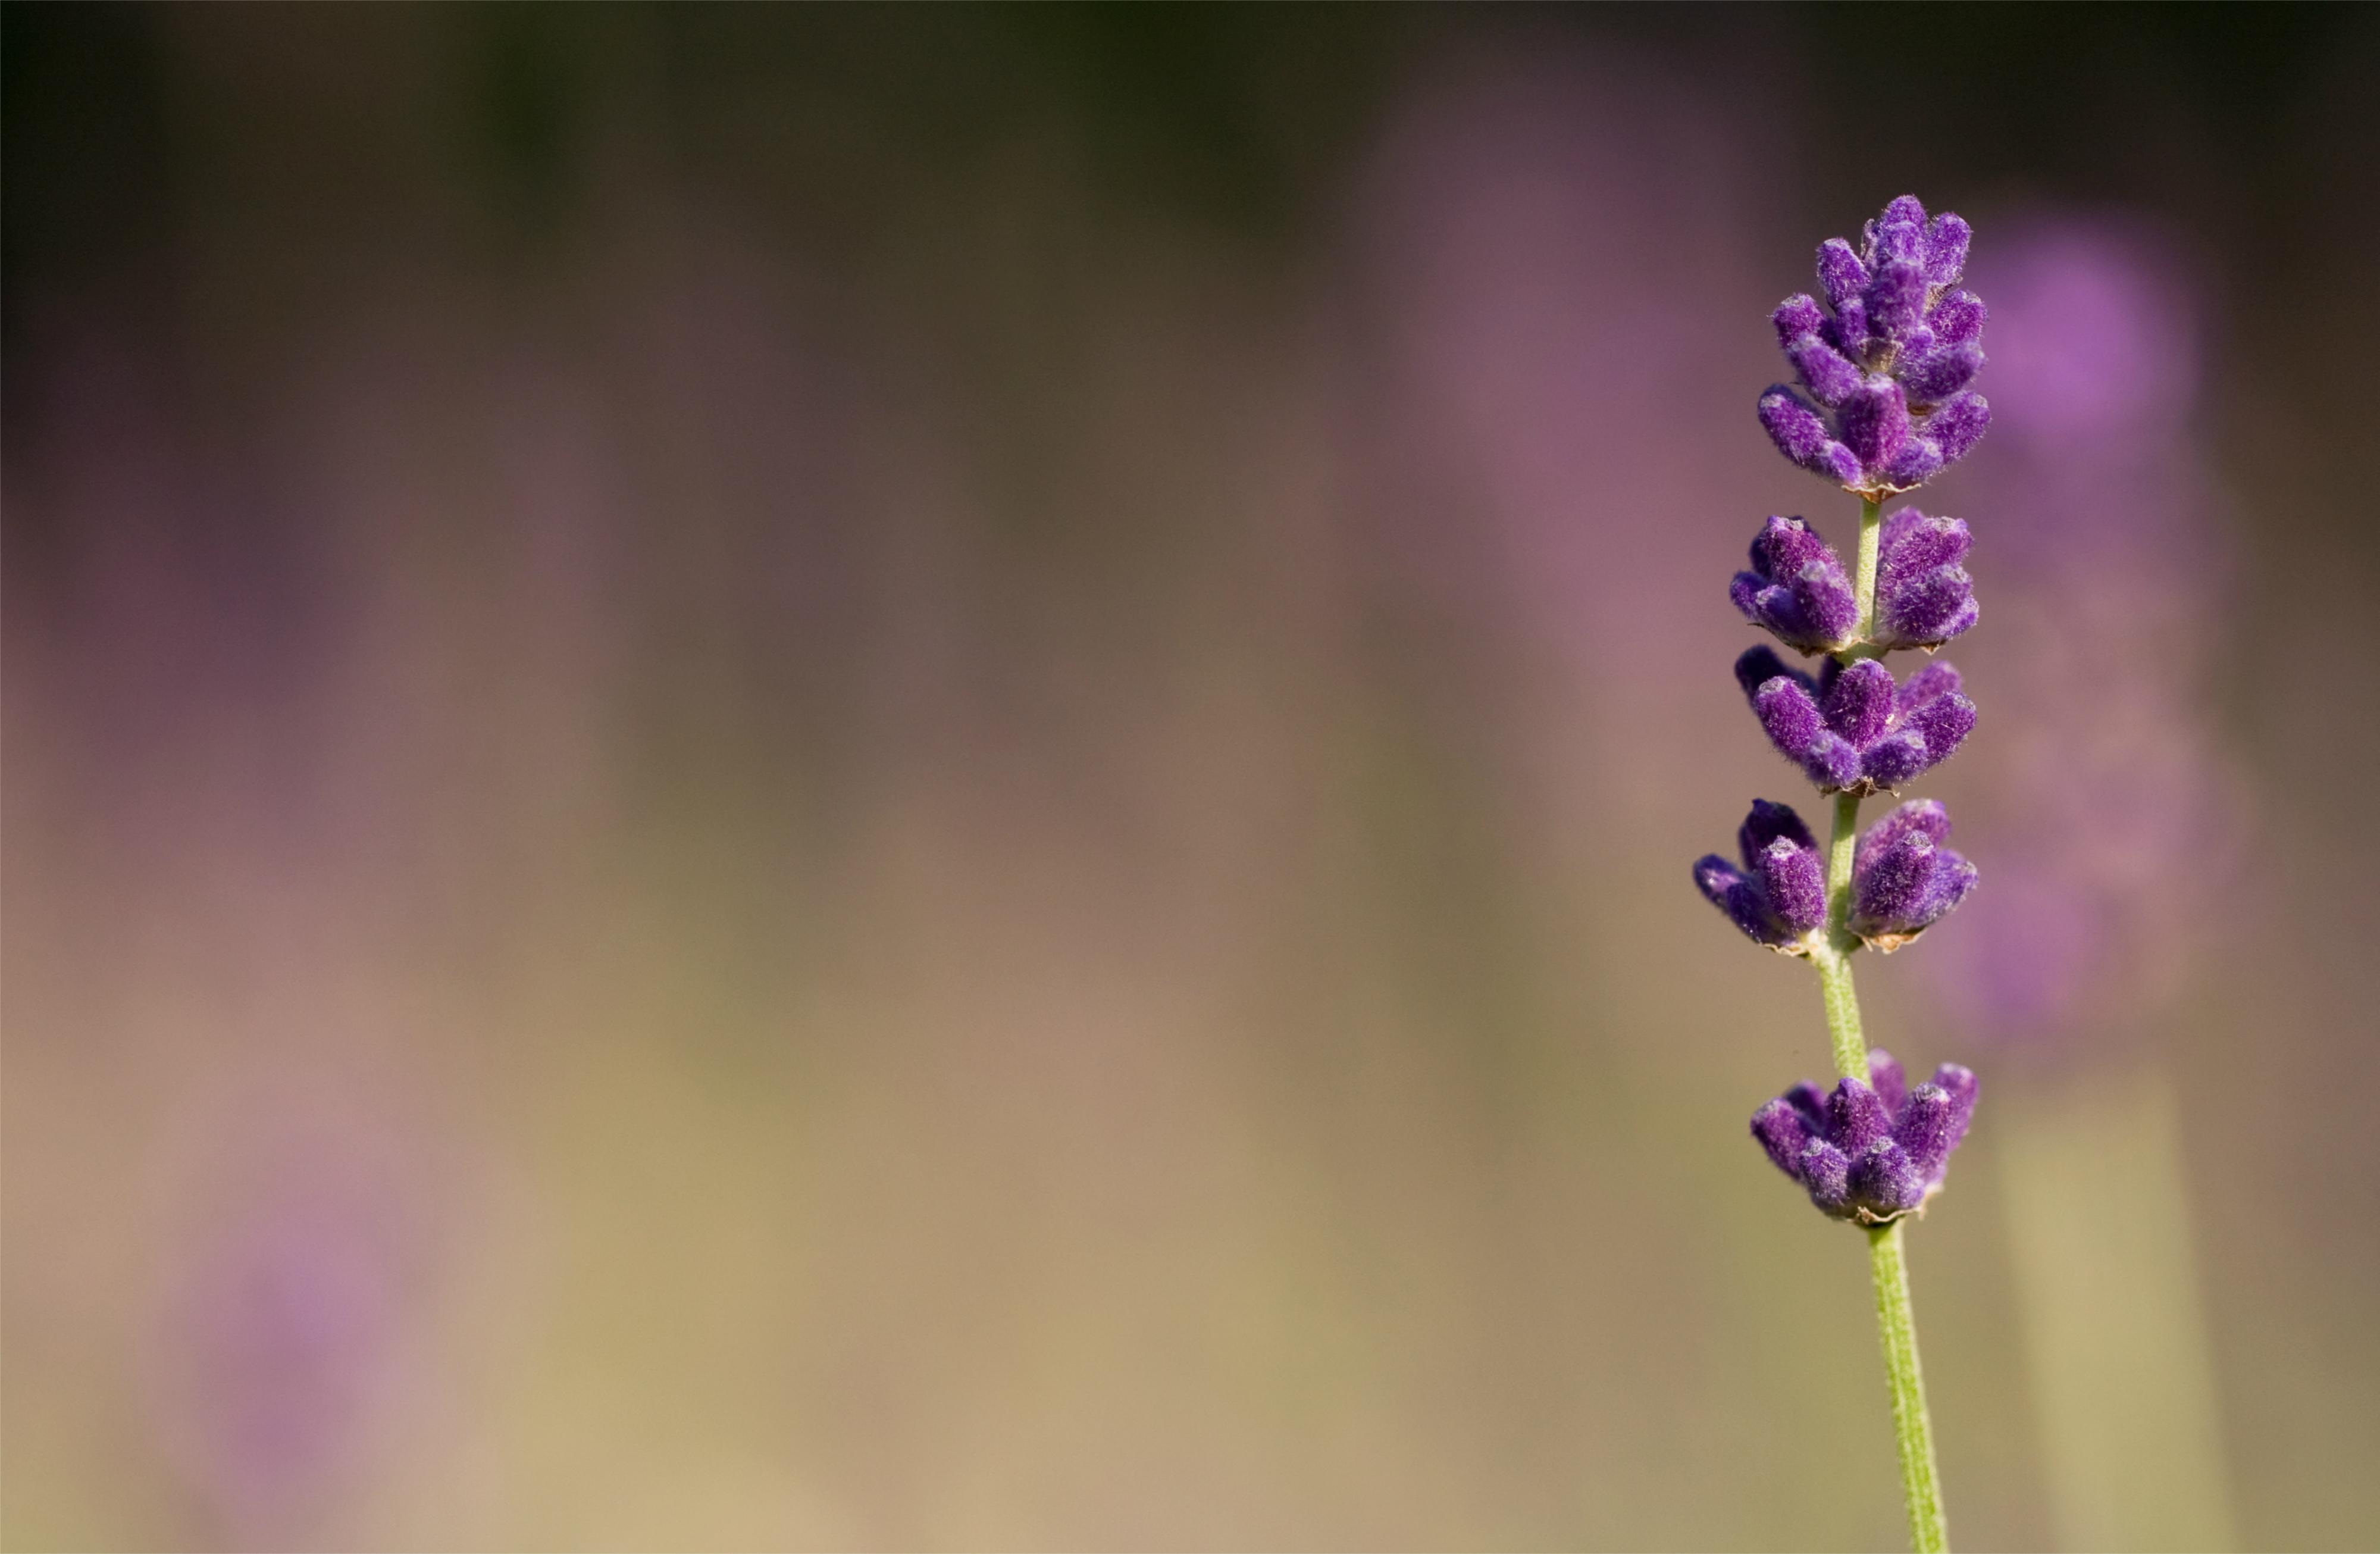 Inspirational Wallpapers With Quotes High Resolution Lavender Flower Wallpapers Hd Pixelstalk Net